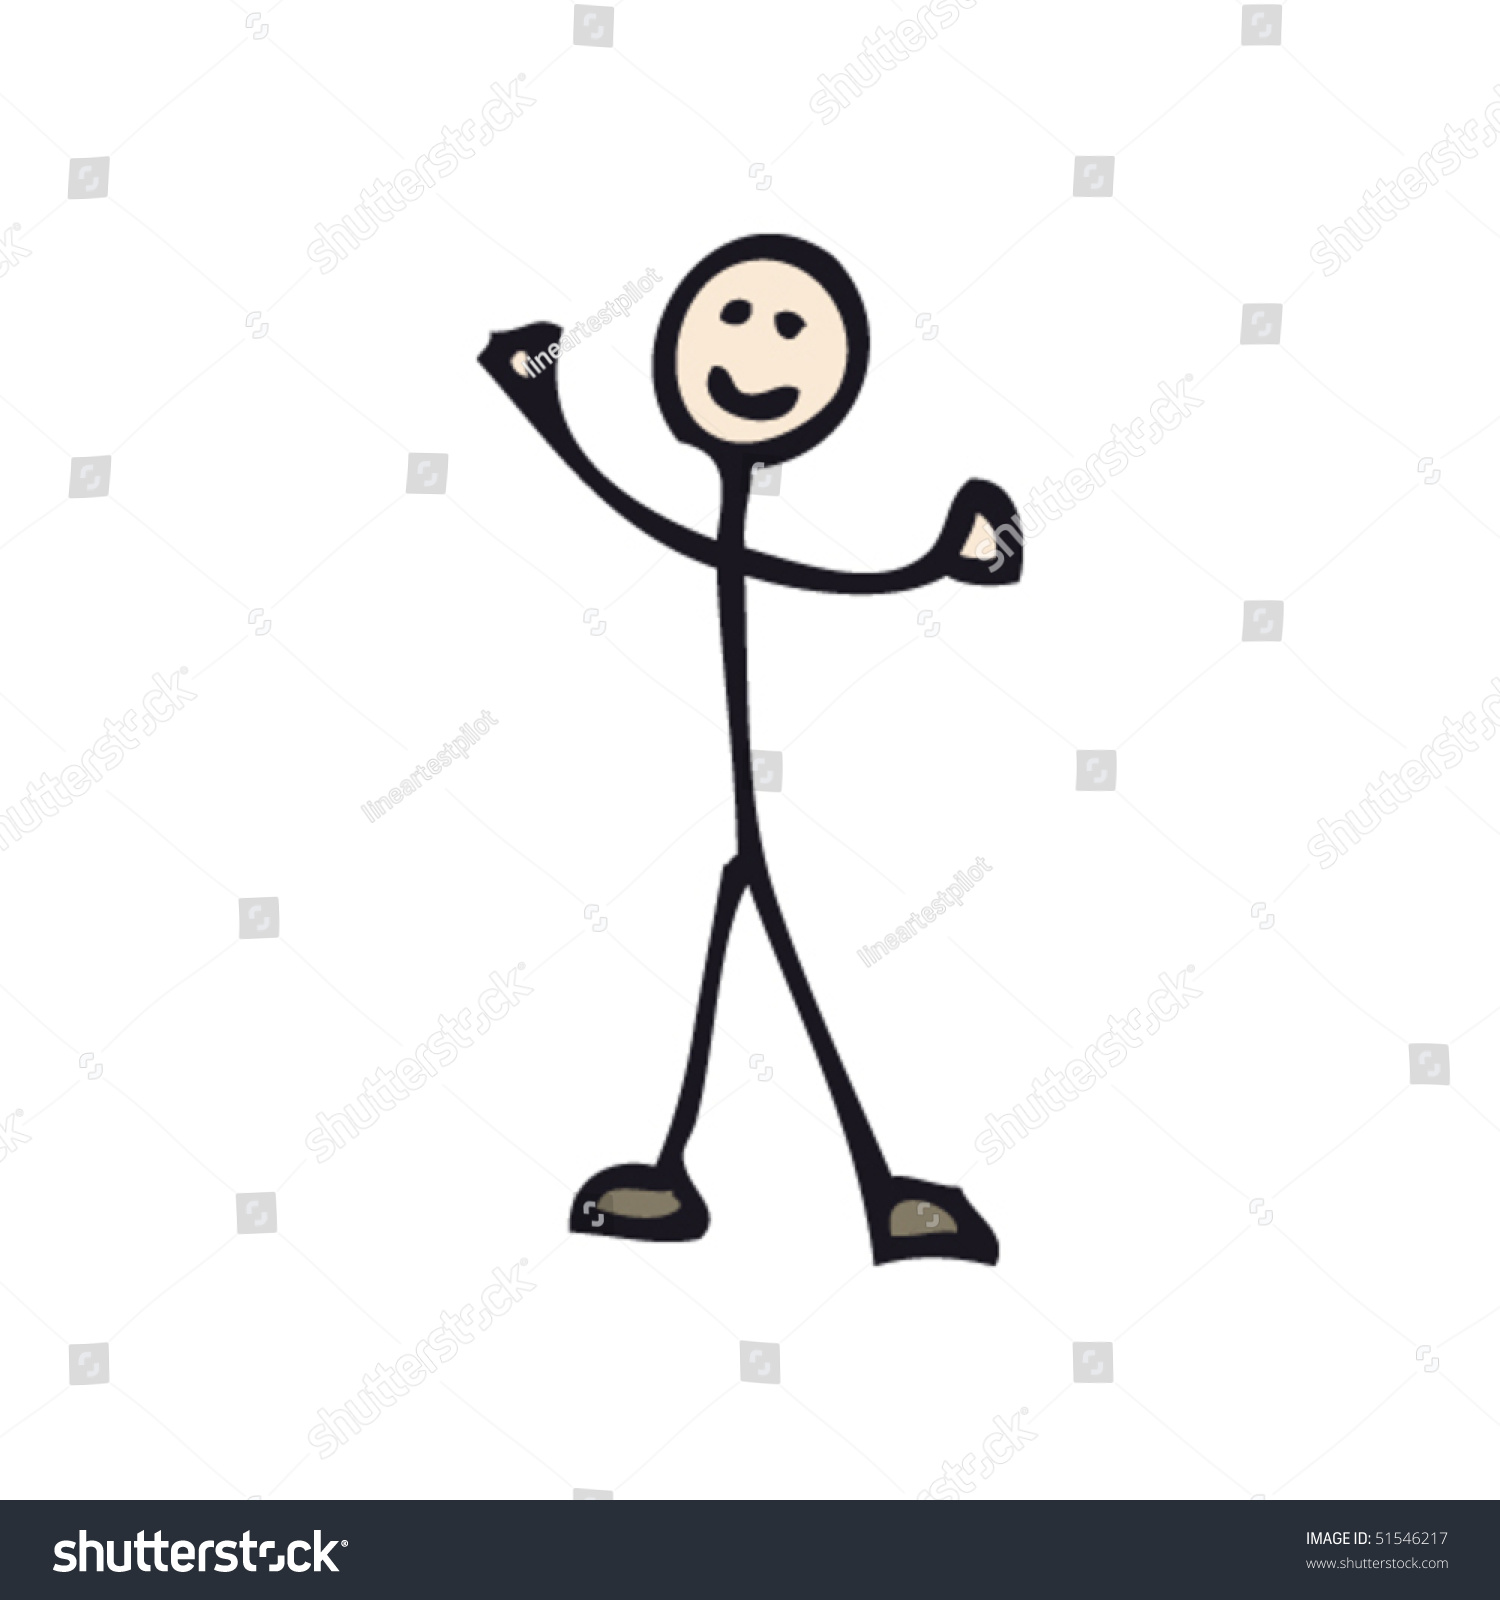 stock-vector-quirky-drawing-of-happy-sti